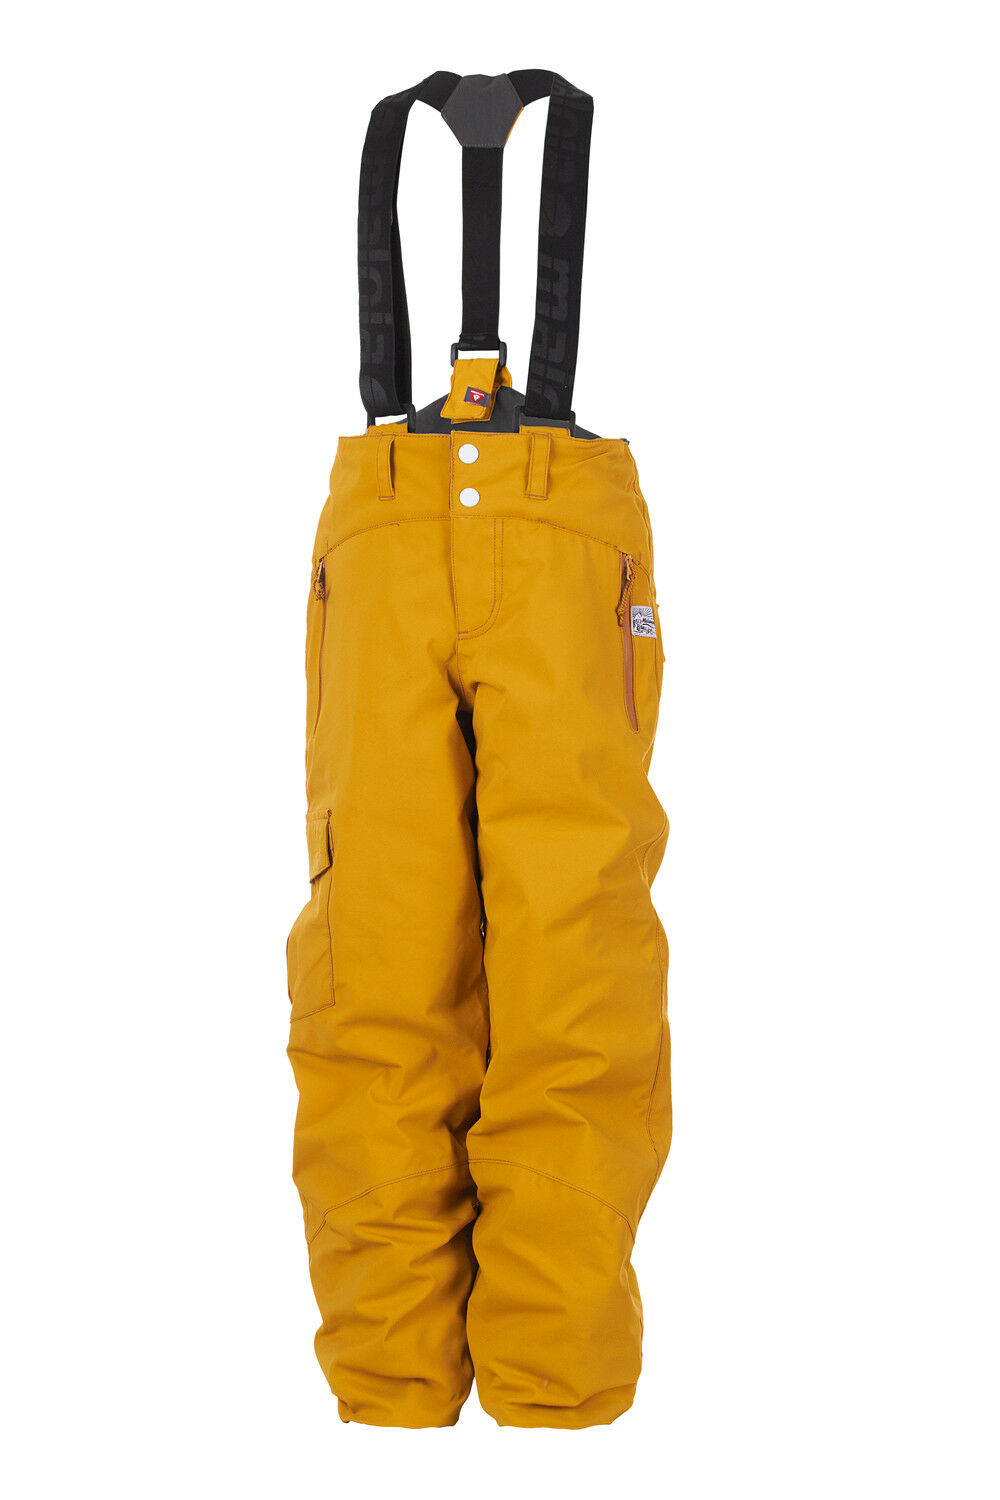 Maloja Ski Pants Snow Pants Bendu. Yellow Stormstopper Growing with Unisex